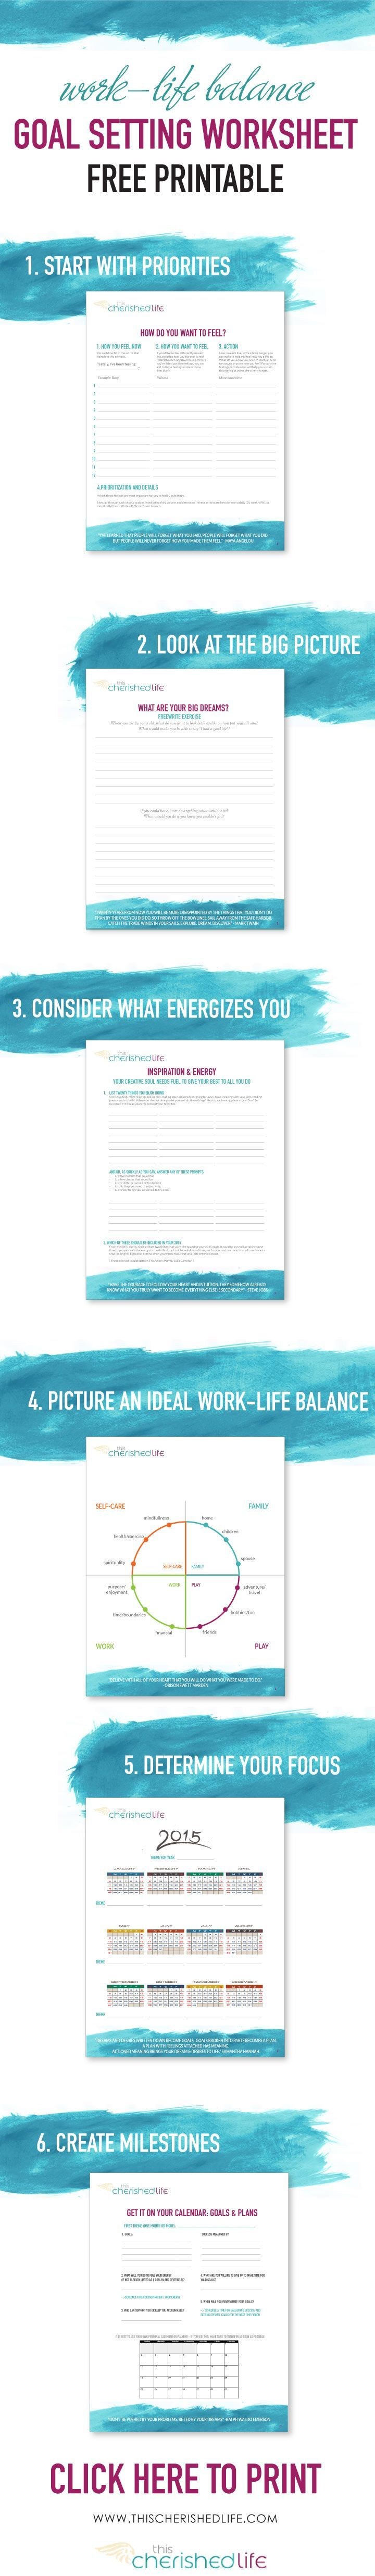 Worksheets Financial Goal Worksheet smart goals worksheet template worksheets for art free 2015 goal setting printable set that matter work life balance especially